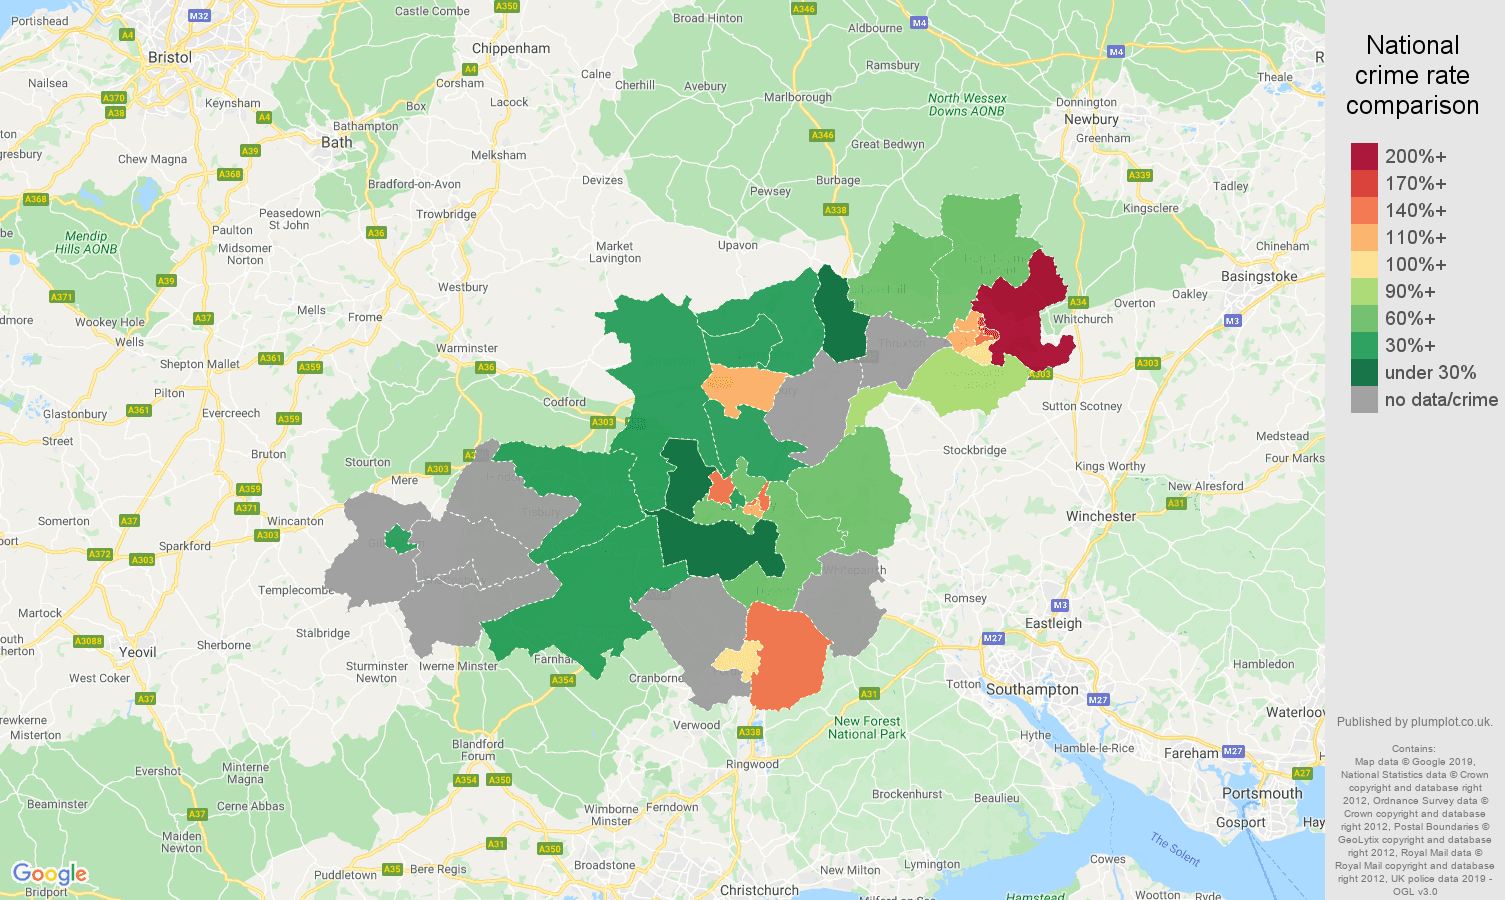 Salisbury possession of weapons crime rate comparison map